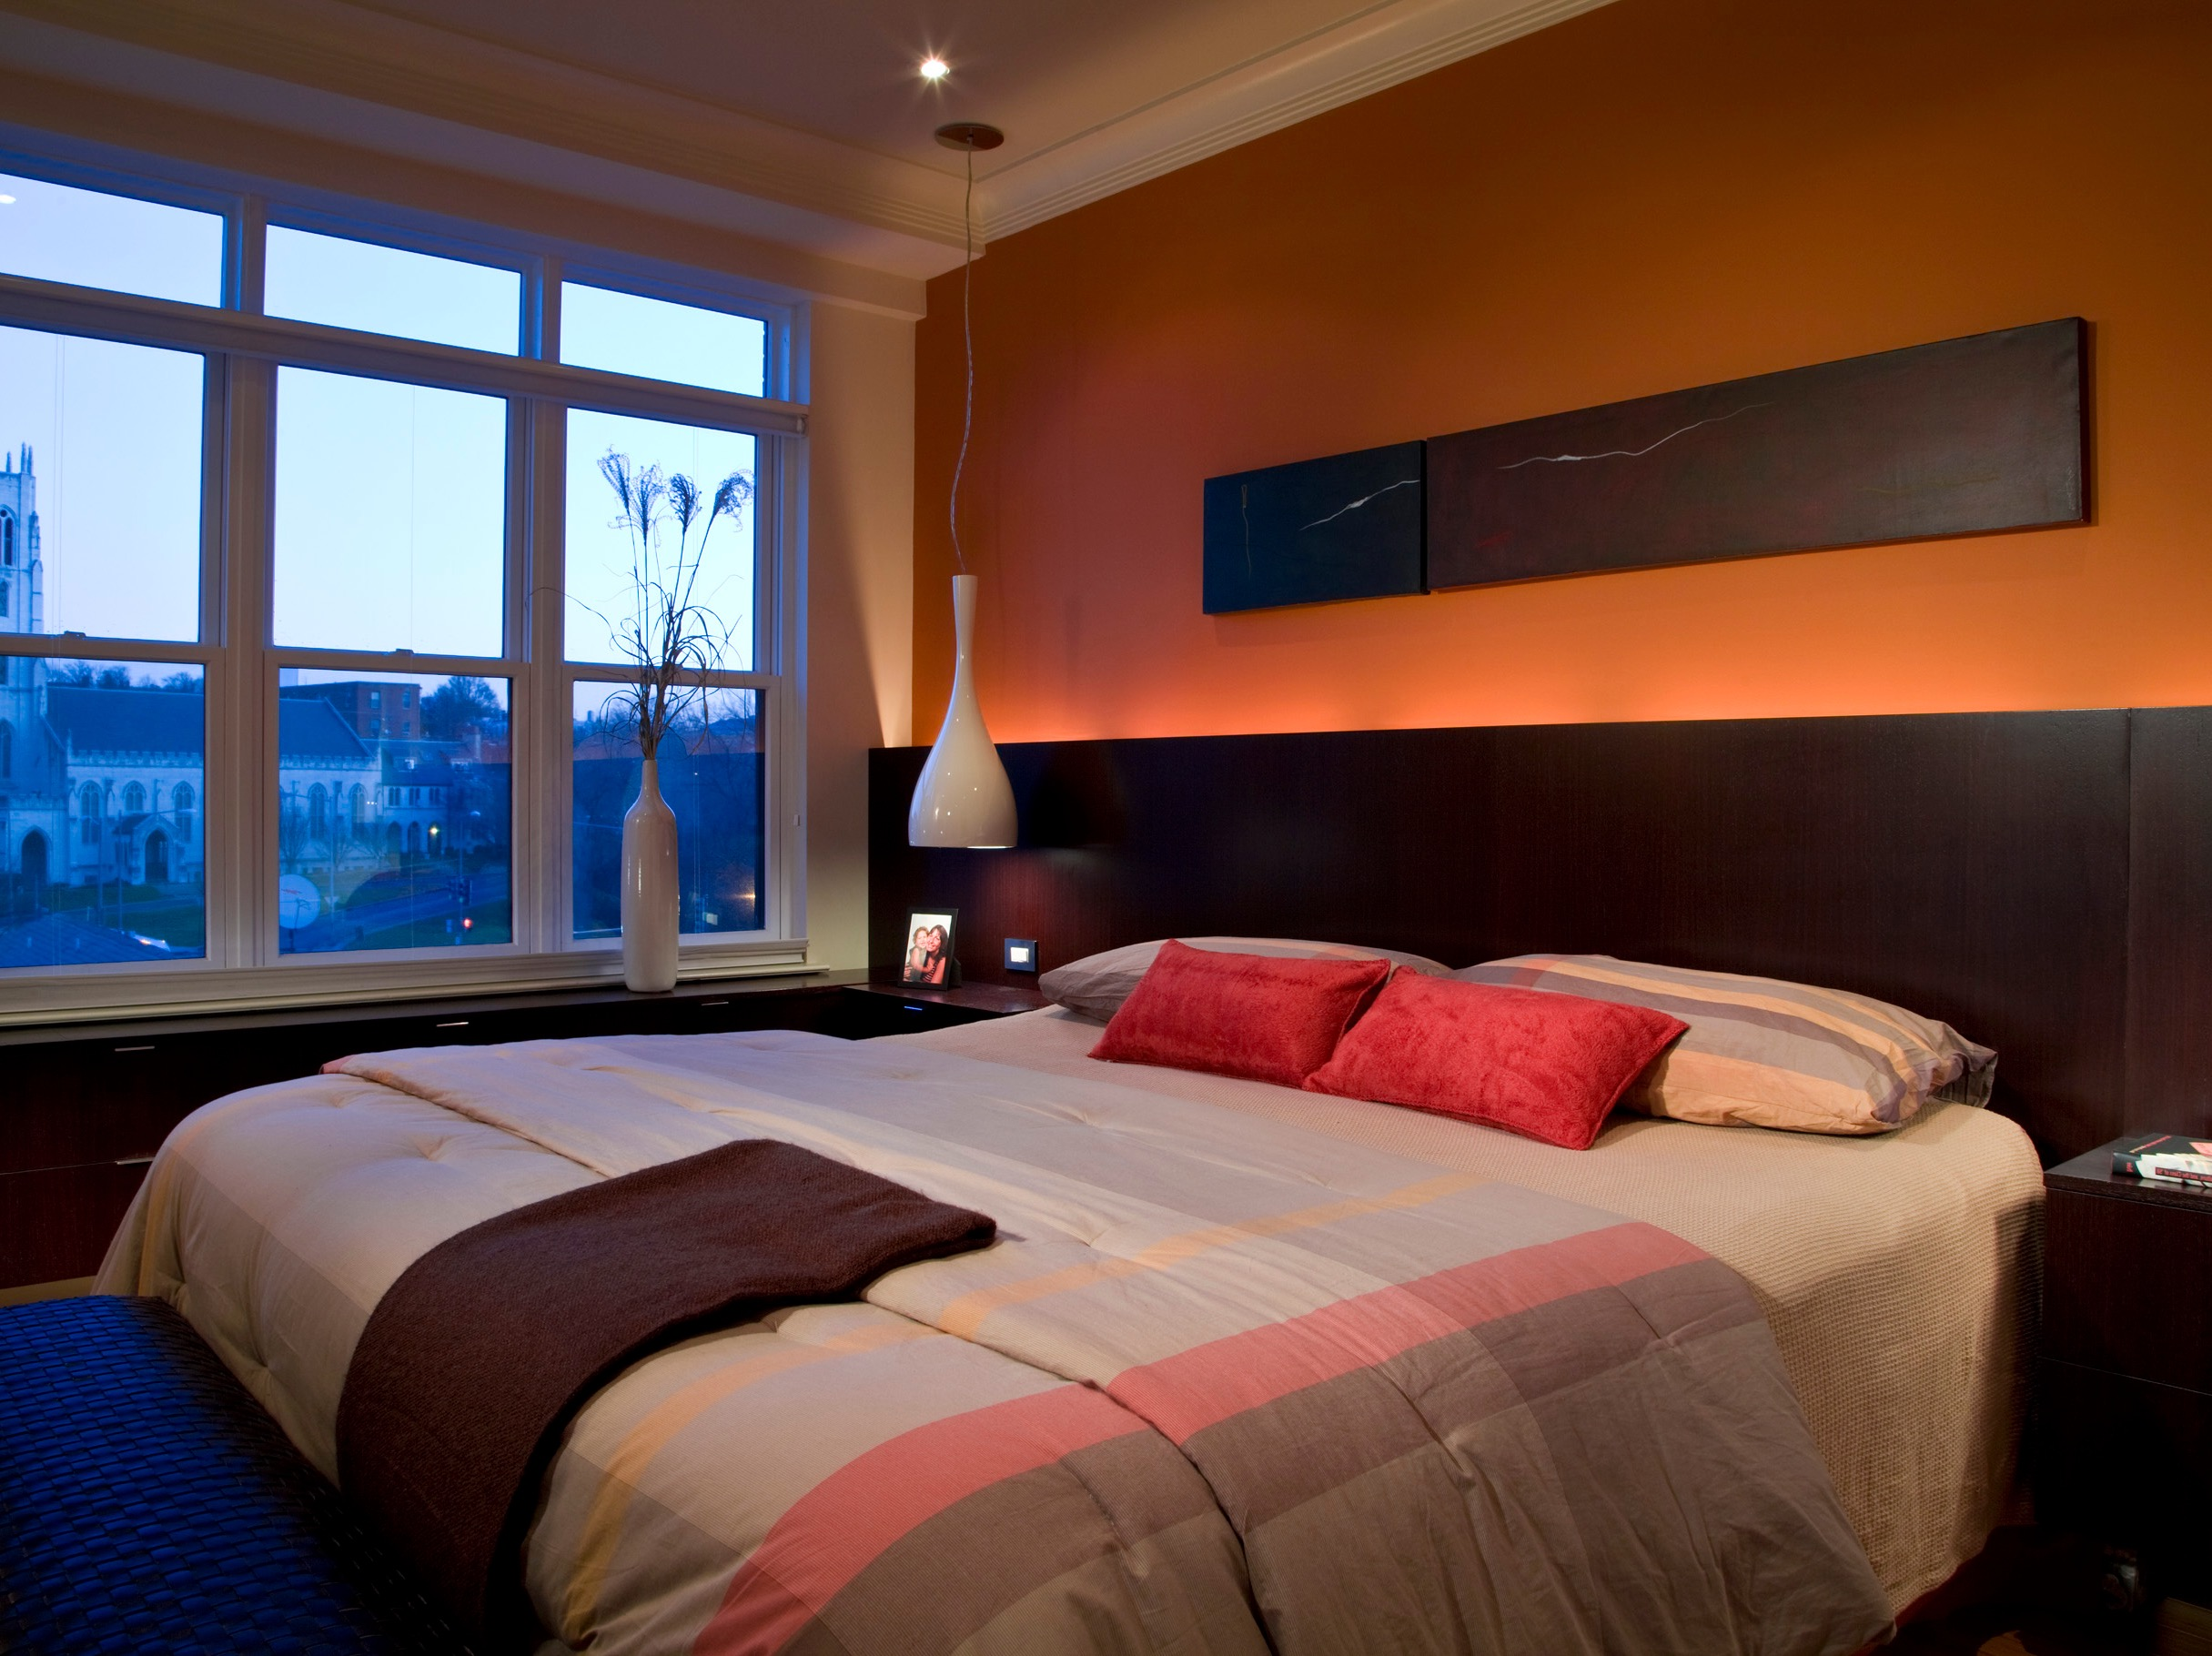 Masculine Orange Bedroom Color With Dramatic Lighting (Image 11 of 22)